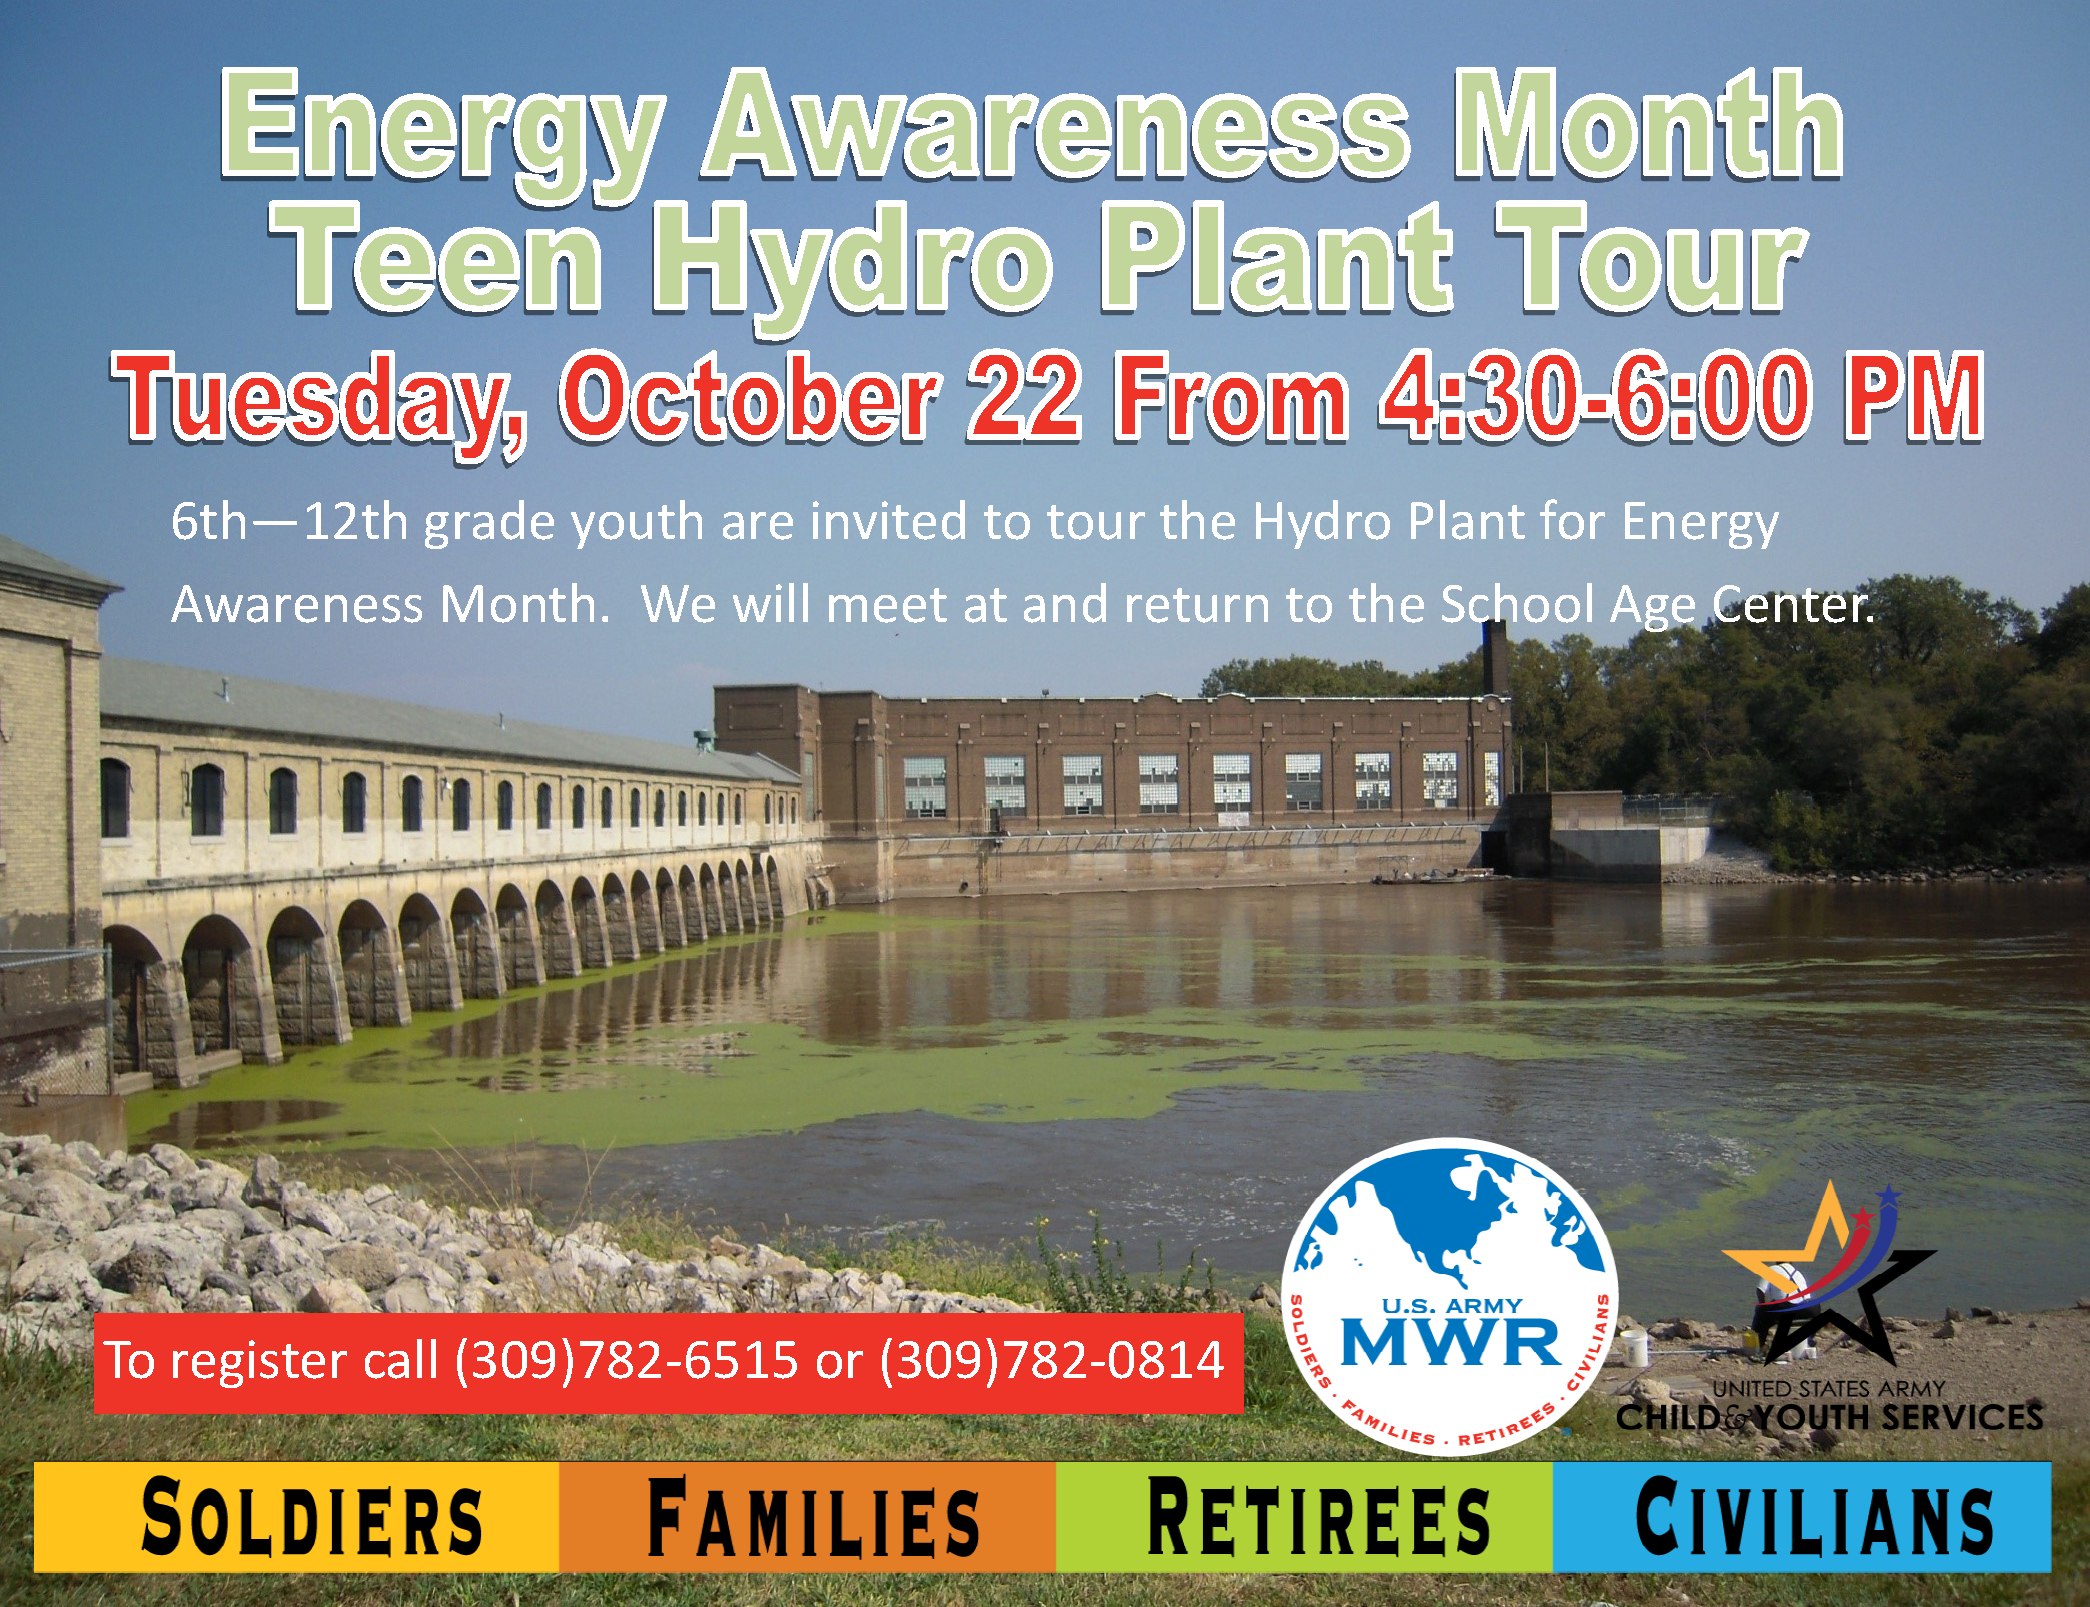 Energy Awareness Month Teen Hydro Plant Tour